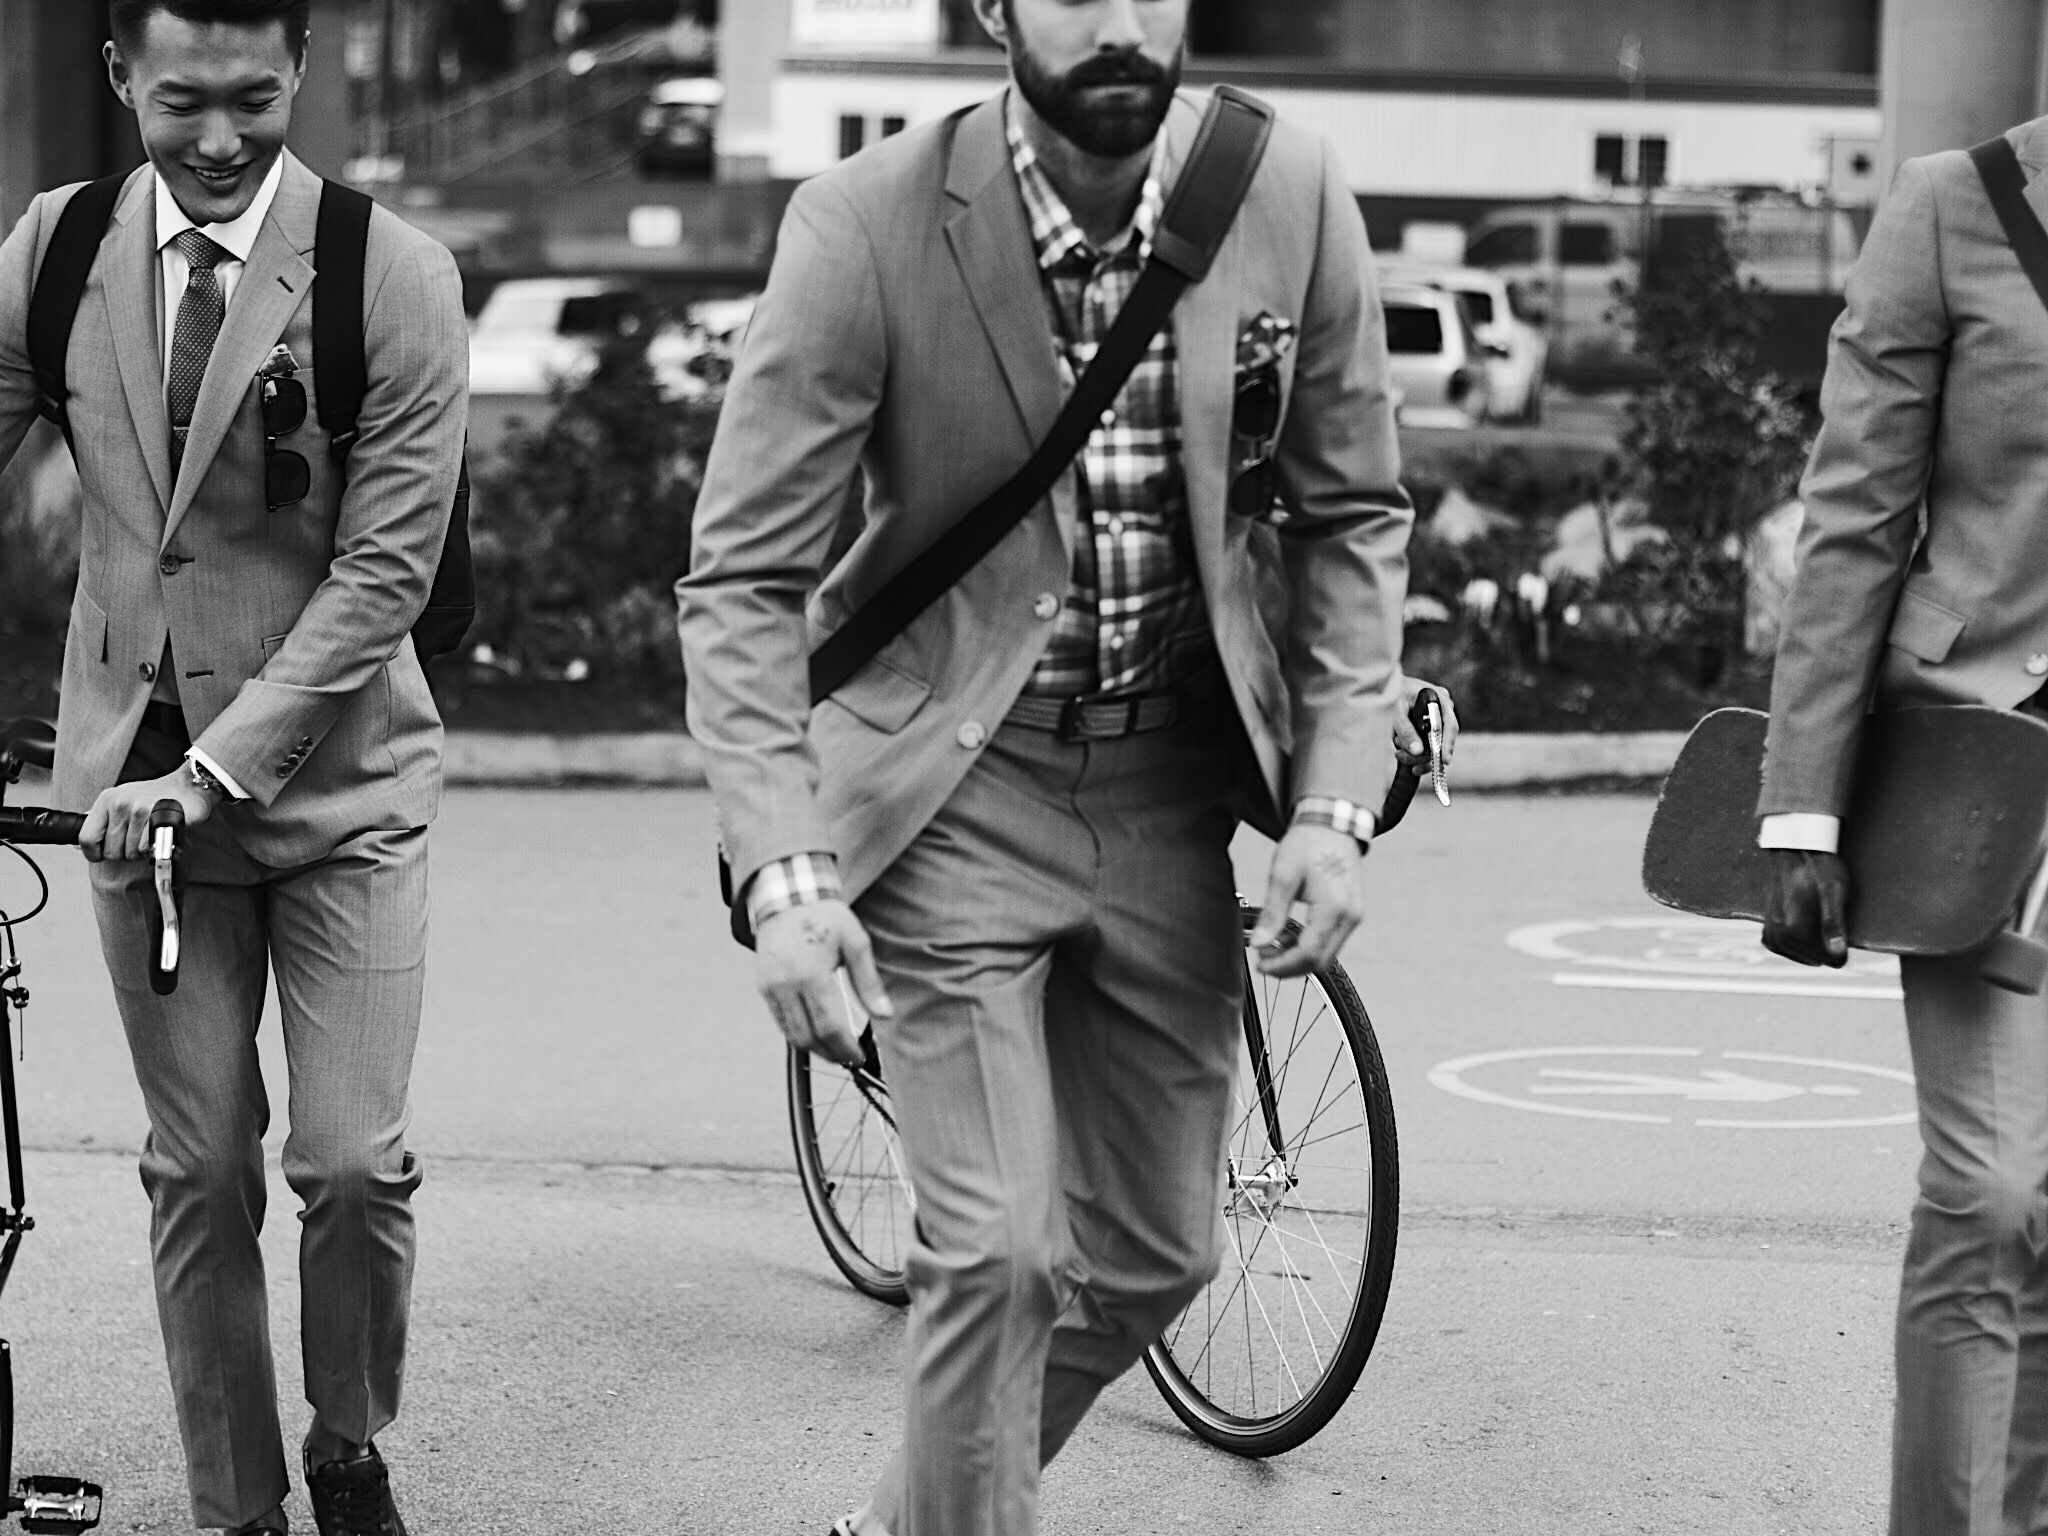 #INDOCHINOss17 INDOCHINO Summer